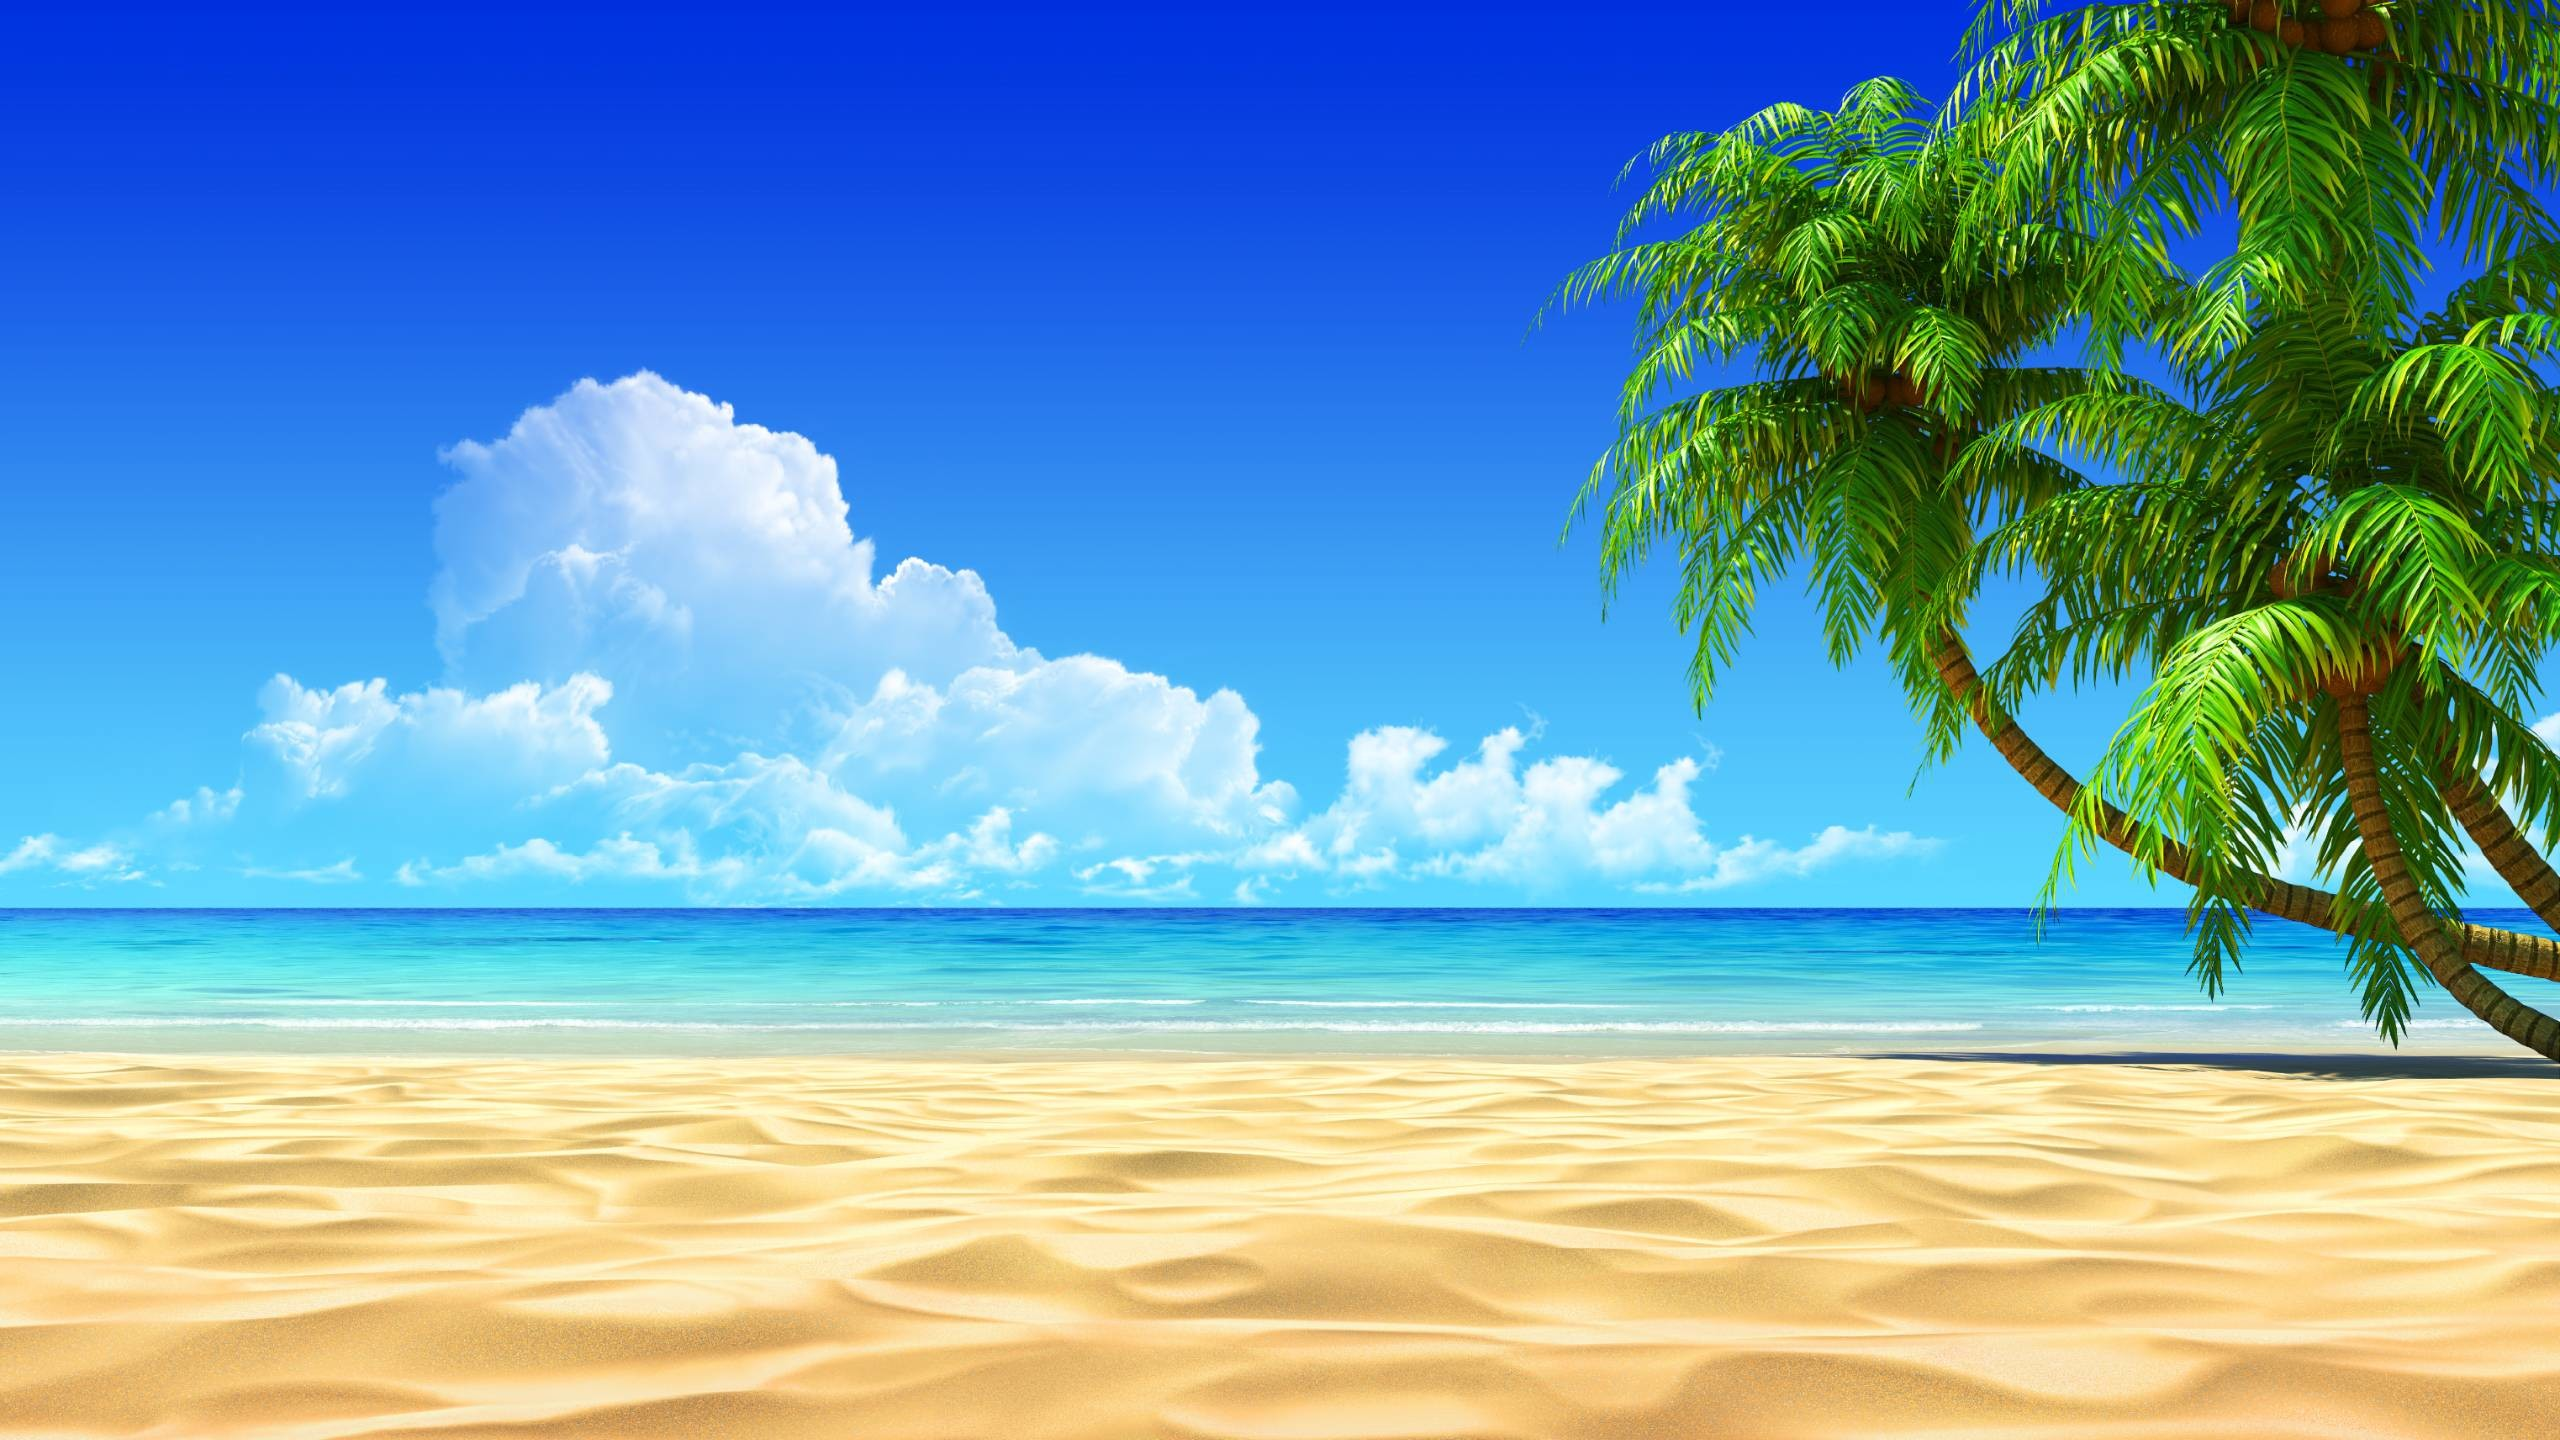 Hd Beach Wallpapers 1080p 68 Images